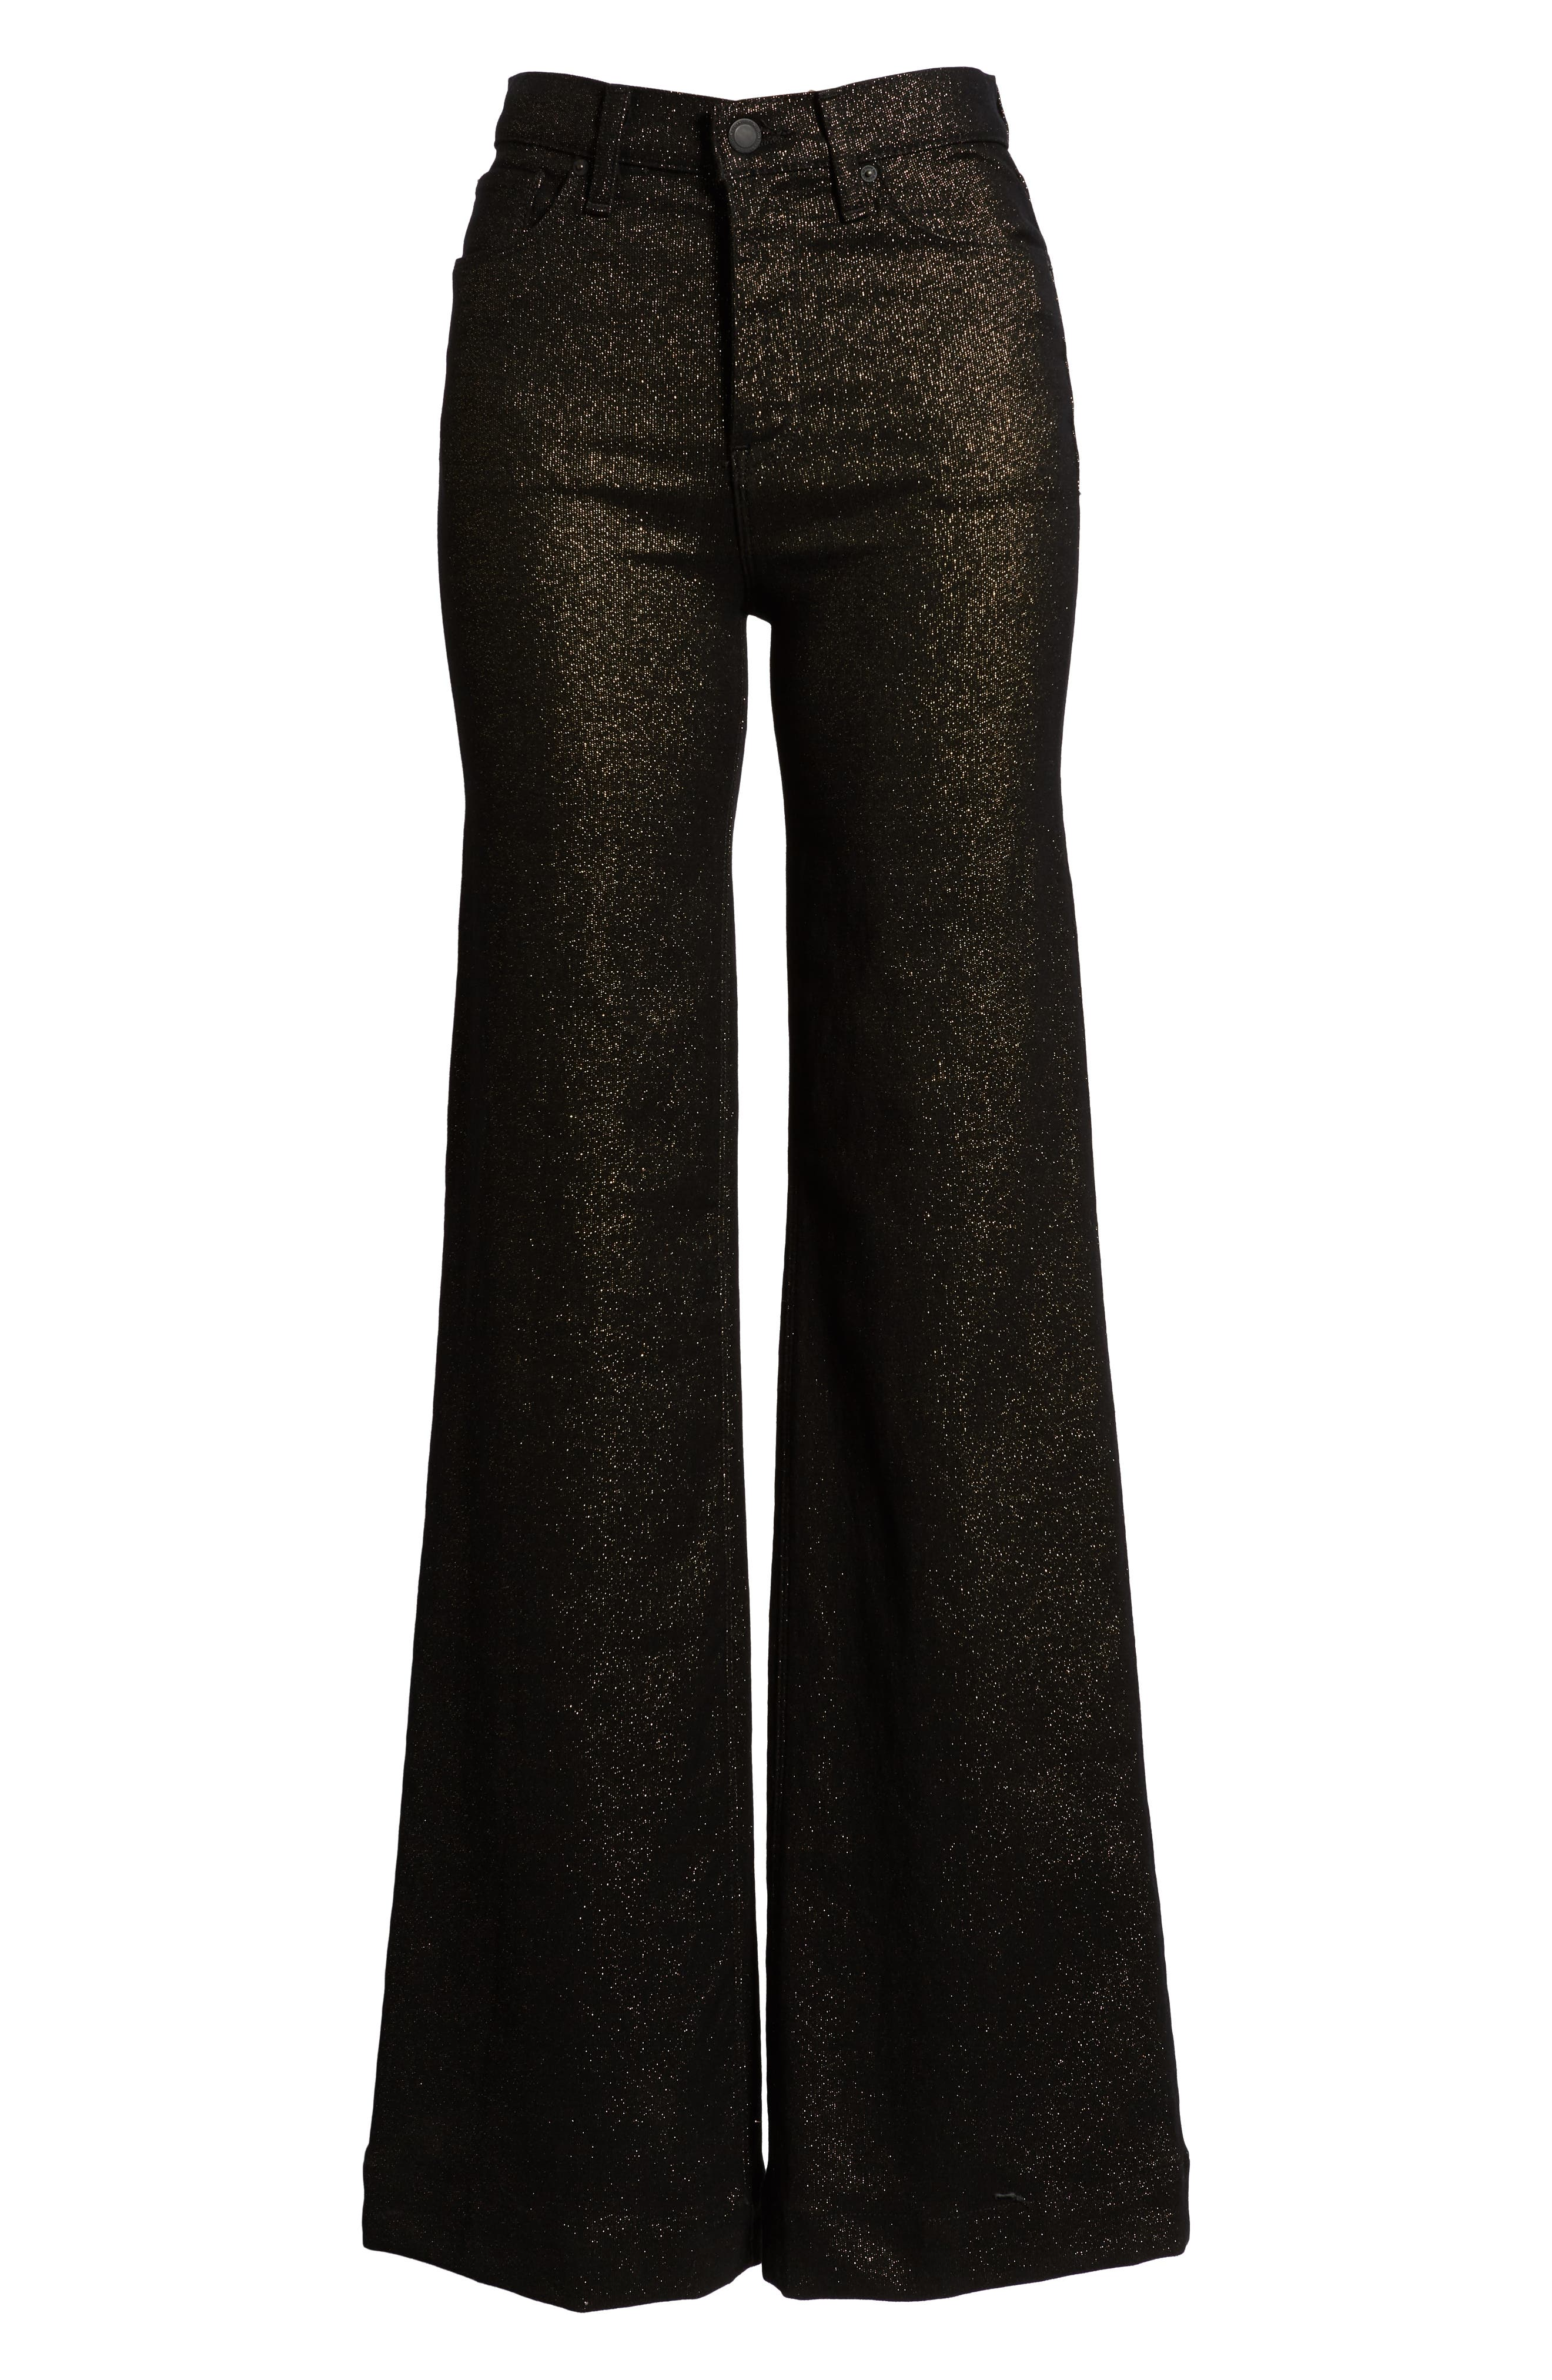 Holly High Waist Wide Leg Jeans,                             Alternate thumbnail 7, color,                             GOLD STELLAR